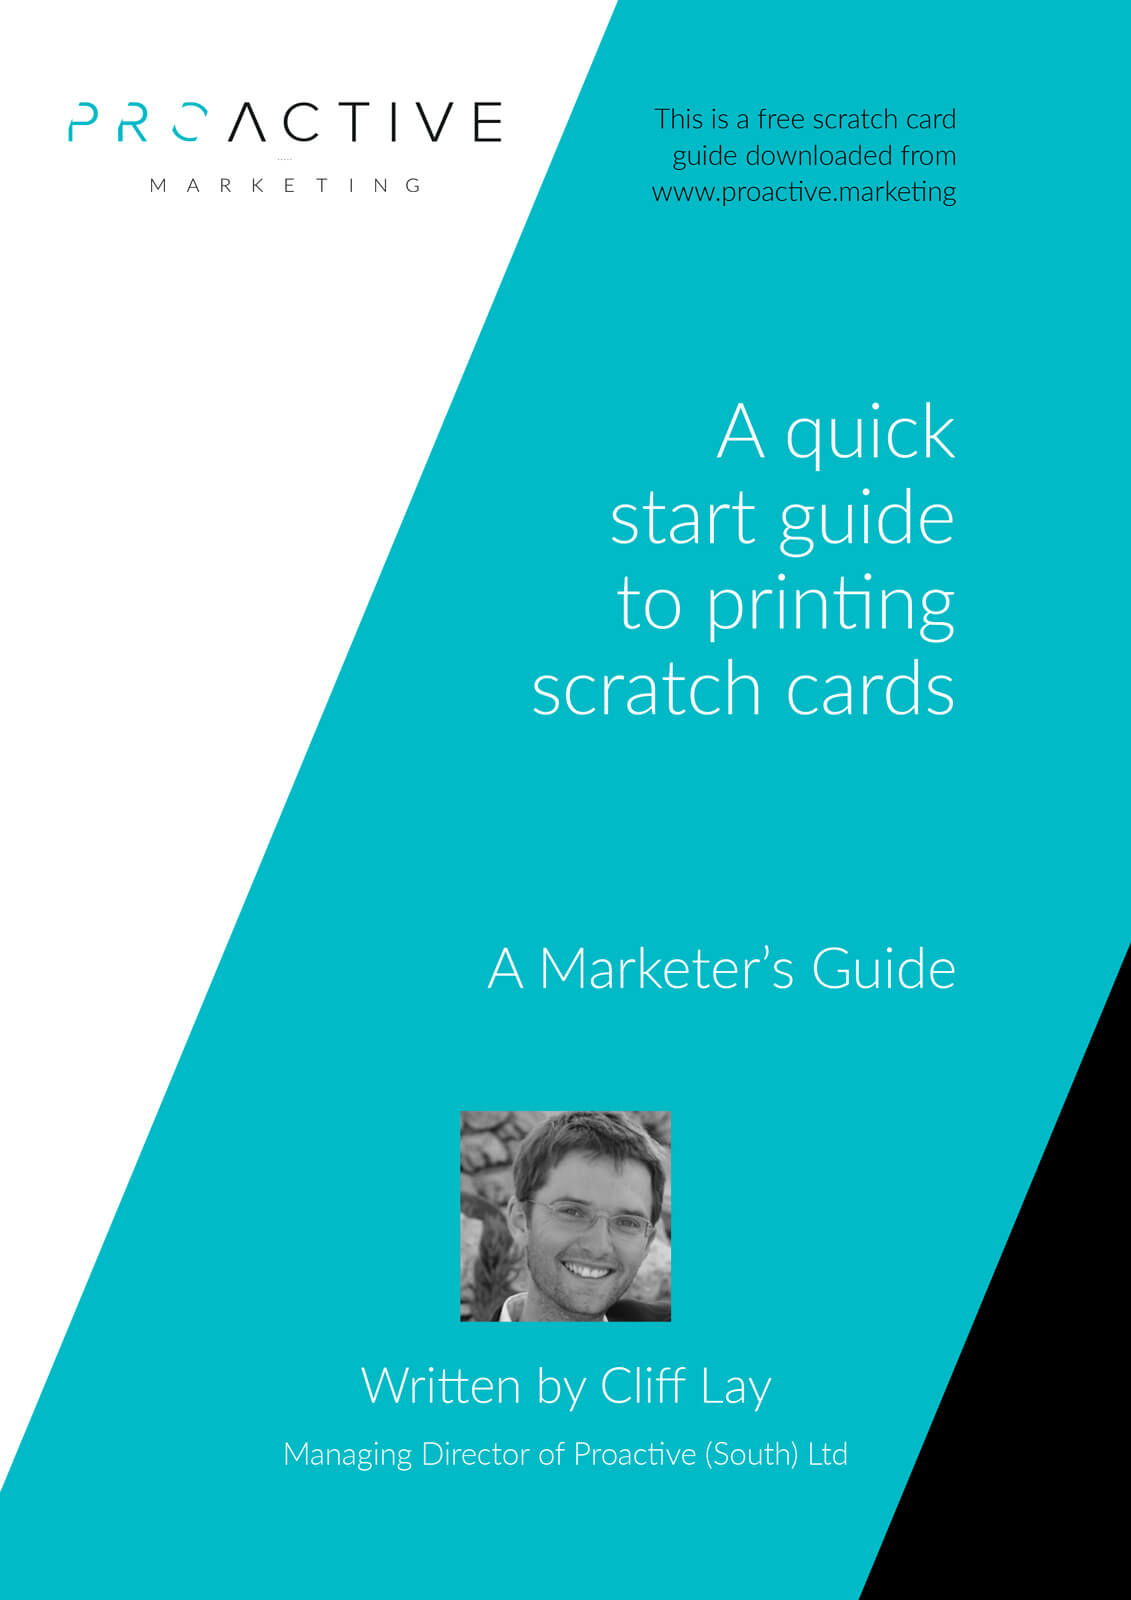 Scratch Card Printing - Download this quick start guide to printing scratchcards